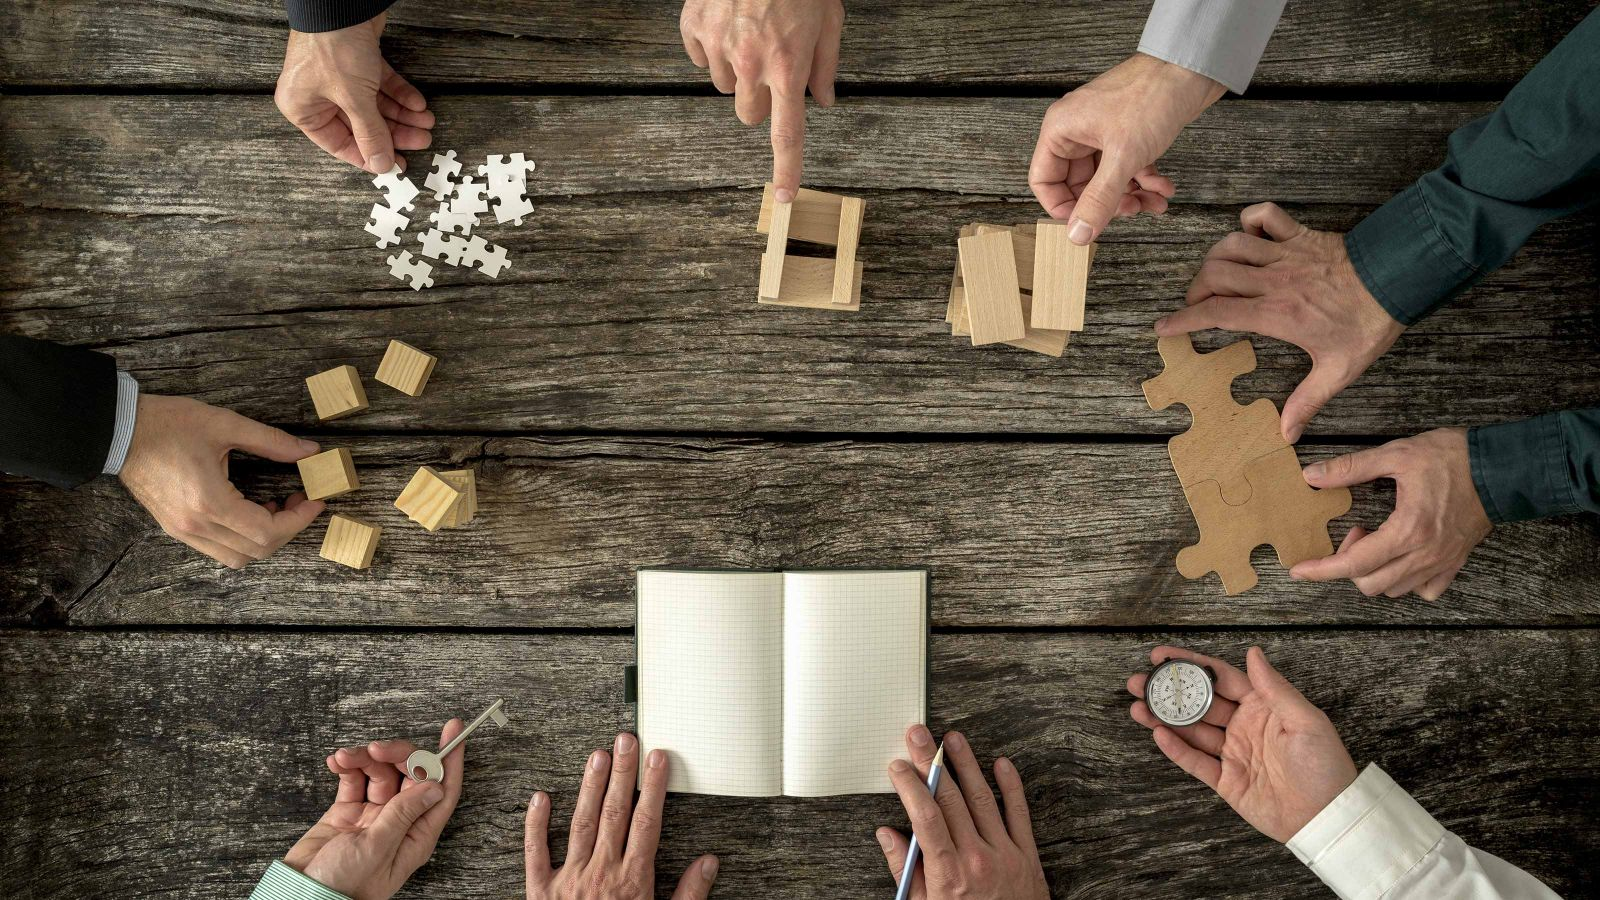 An image of hands around a wooden table holding various small objects, like a compass, small cubes, puzzle pieces, a key and a note book.